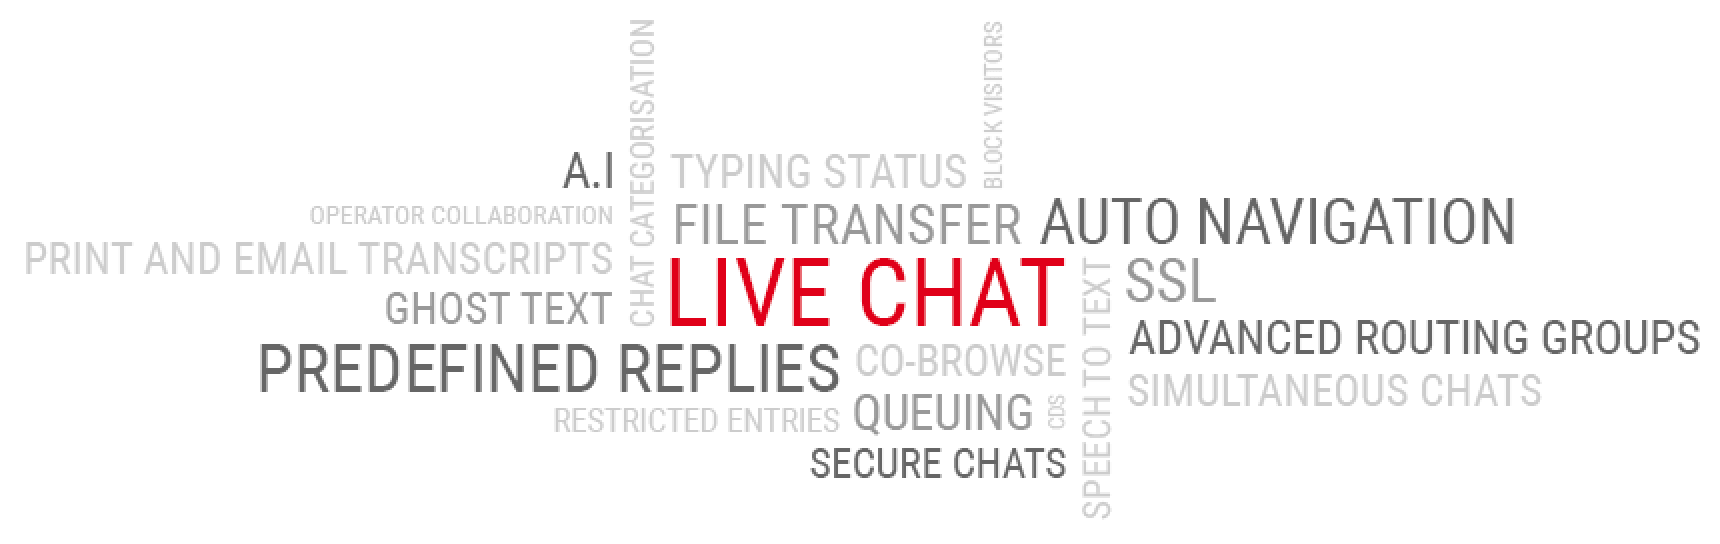 Word cloud of live chat features.